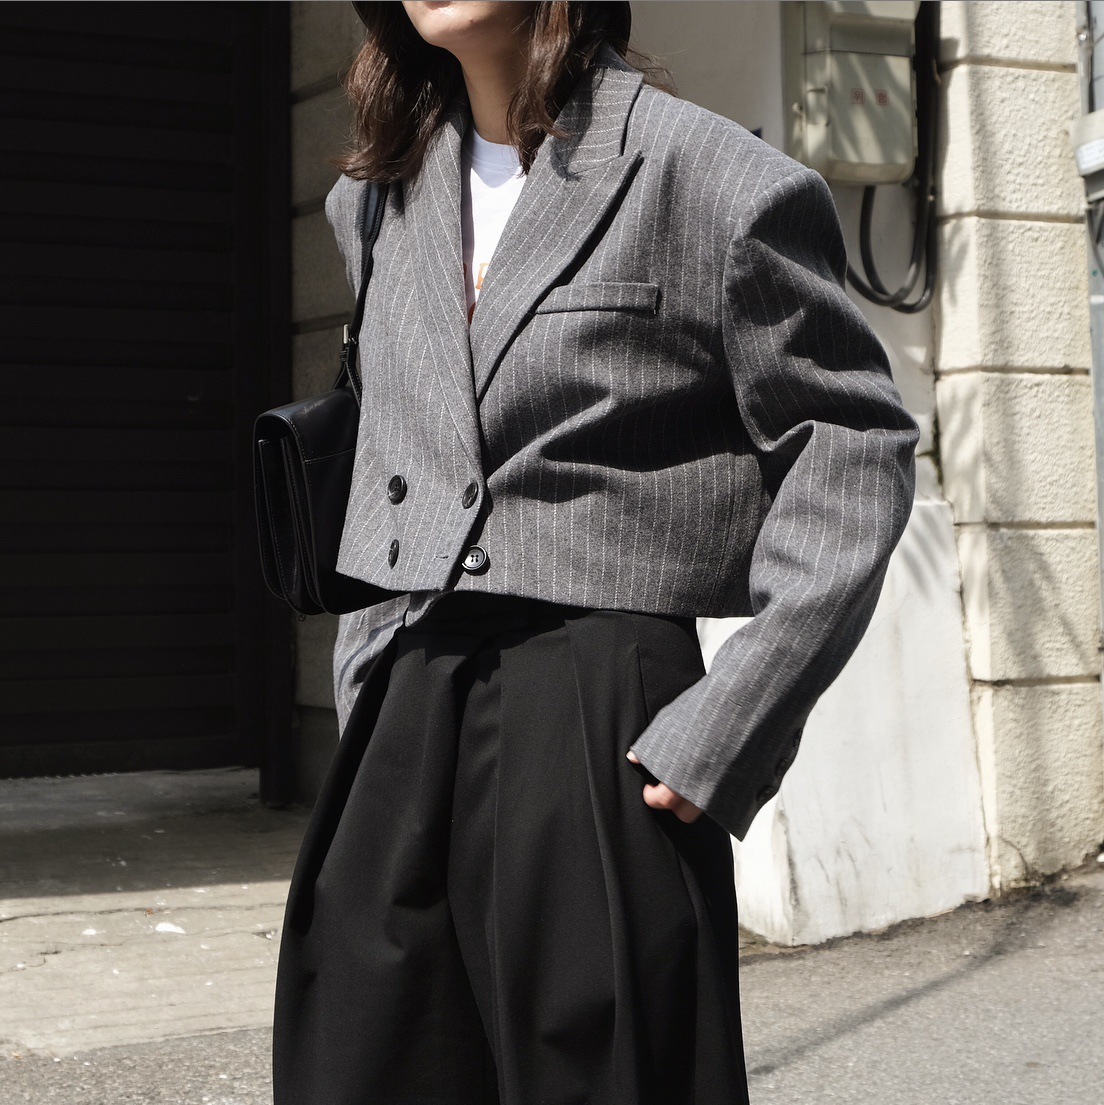 Silhouette Loose Short Wool Jacket Top Women Autumn Winter Fashion Street Striped High Waist Cocoon Small Suit